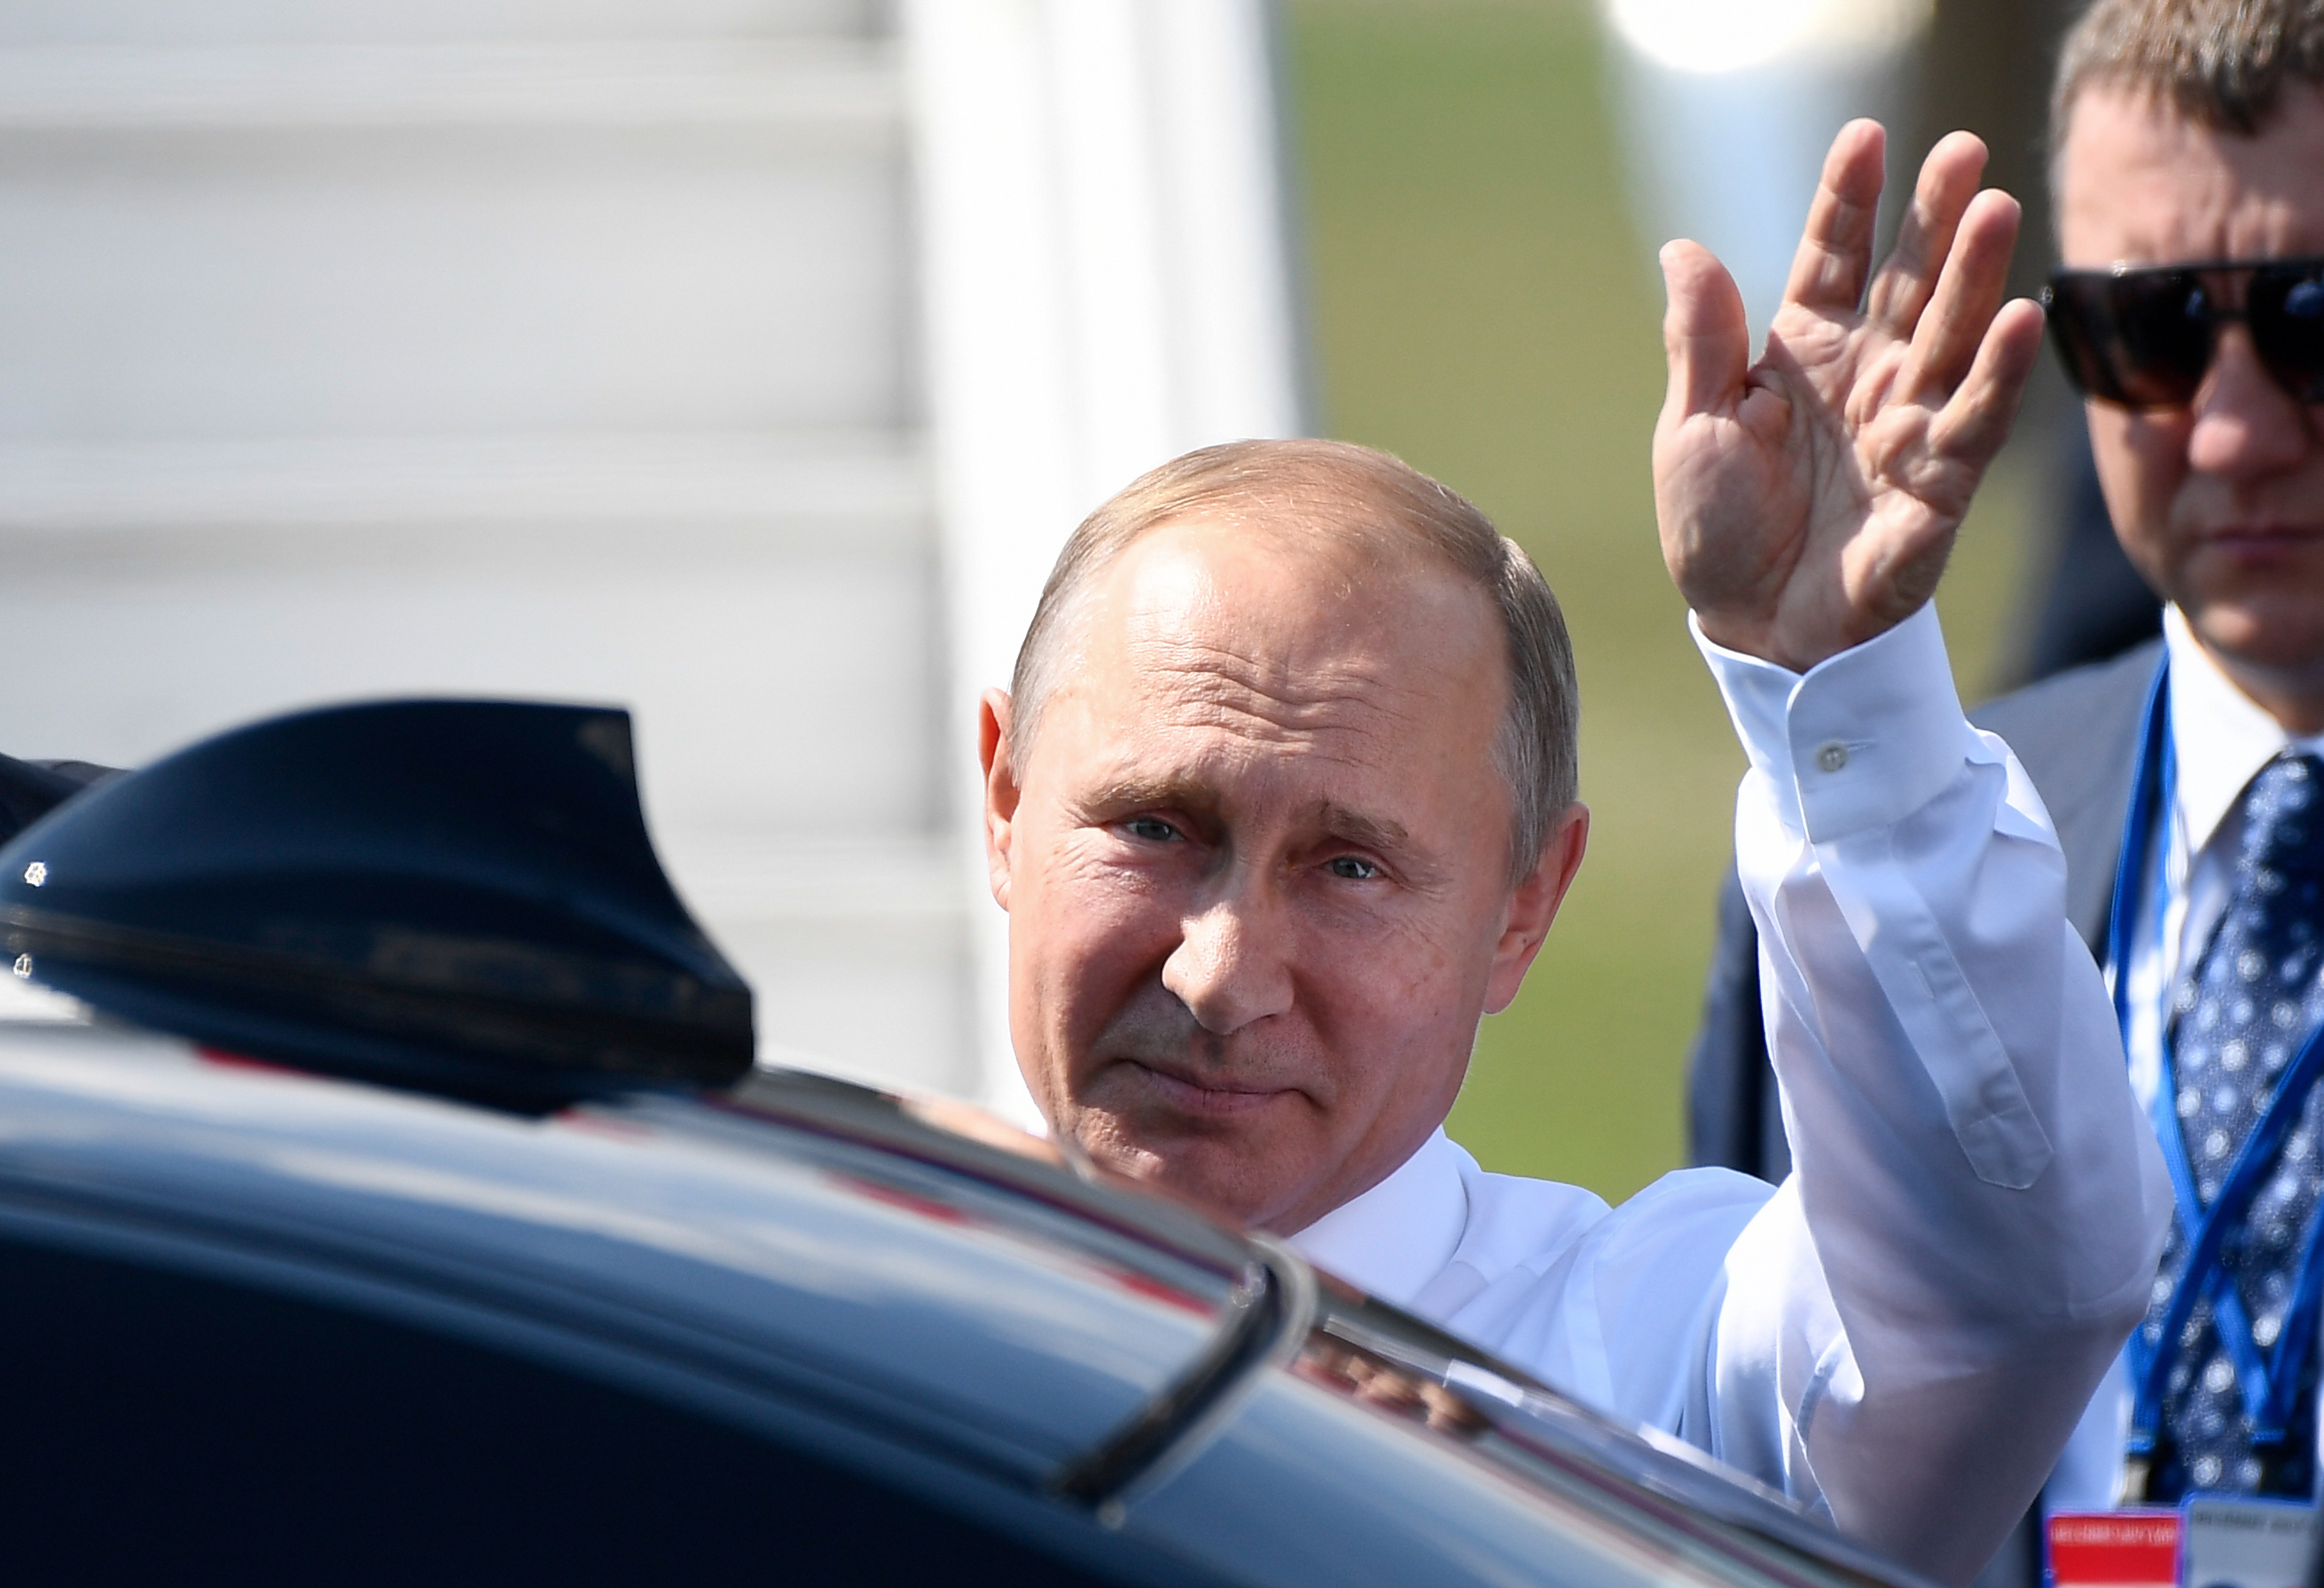 Russian President Vladimir Putin waves upon his arrival at the Helsinki-Vantaa Airport in Helsinki, on July 16, 2018 prior to a summit  between him and the U.S. President.